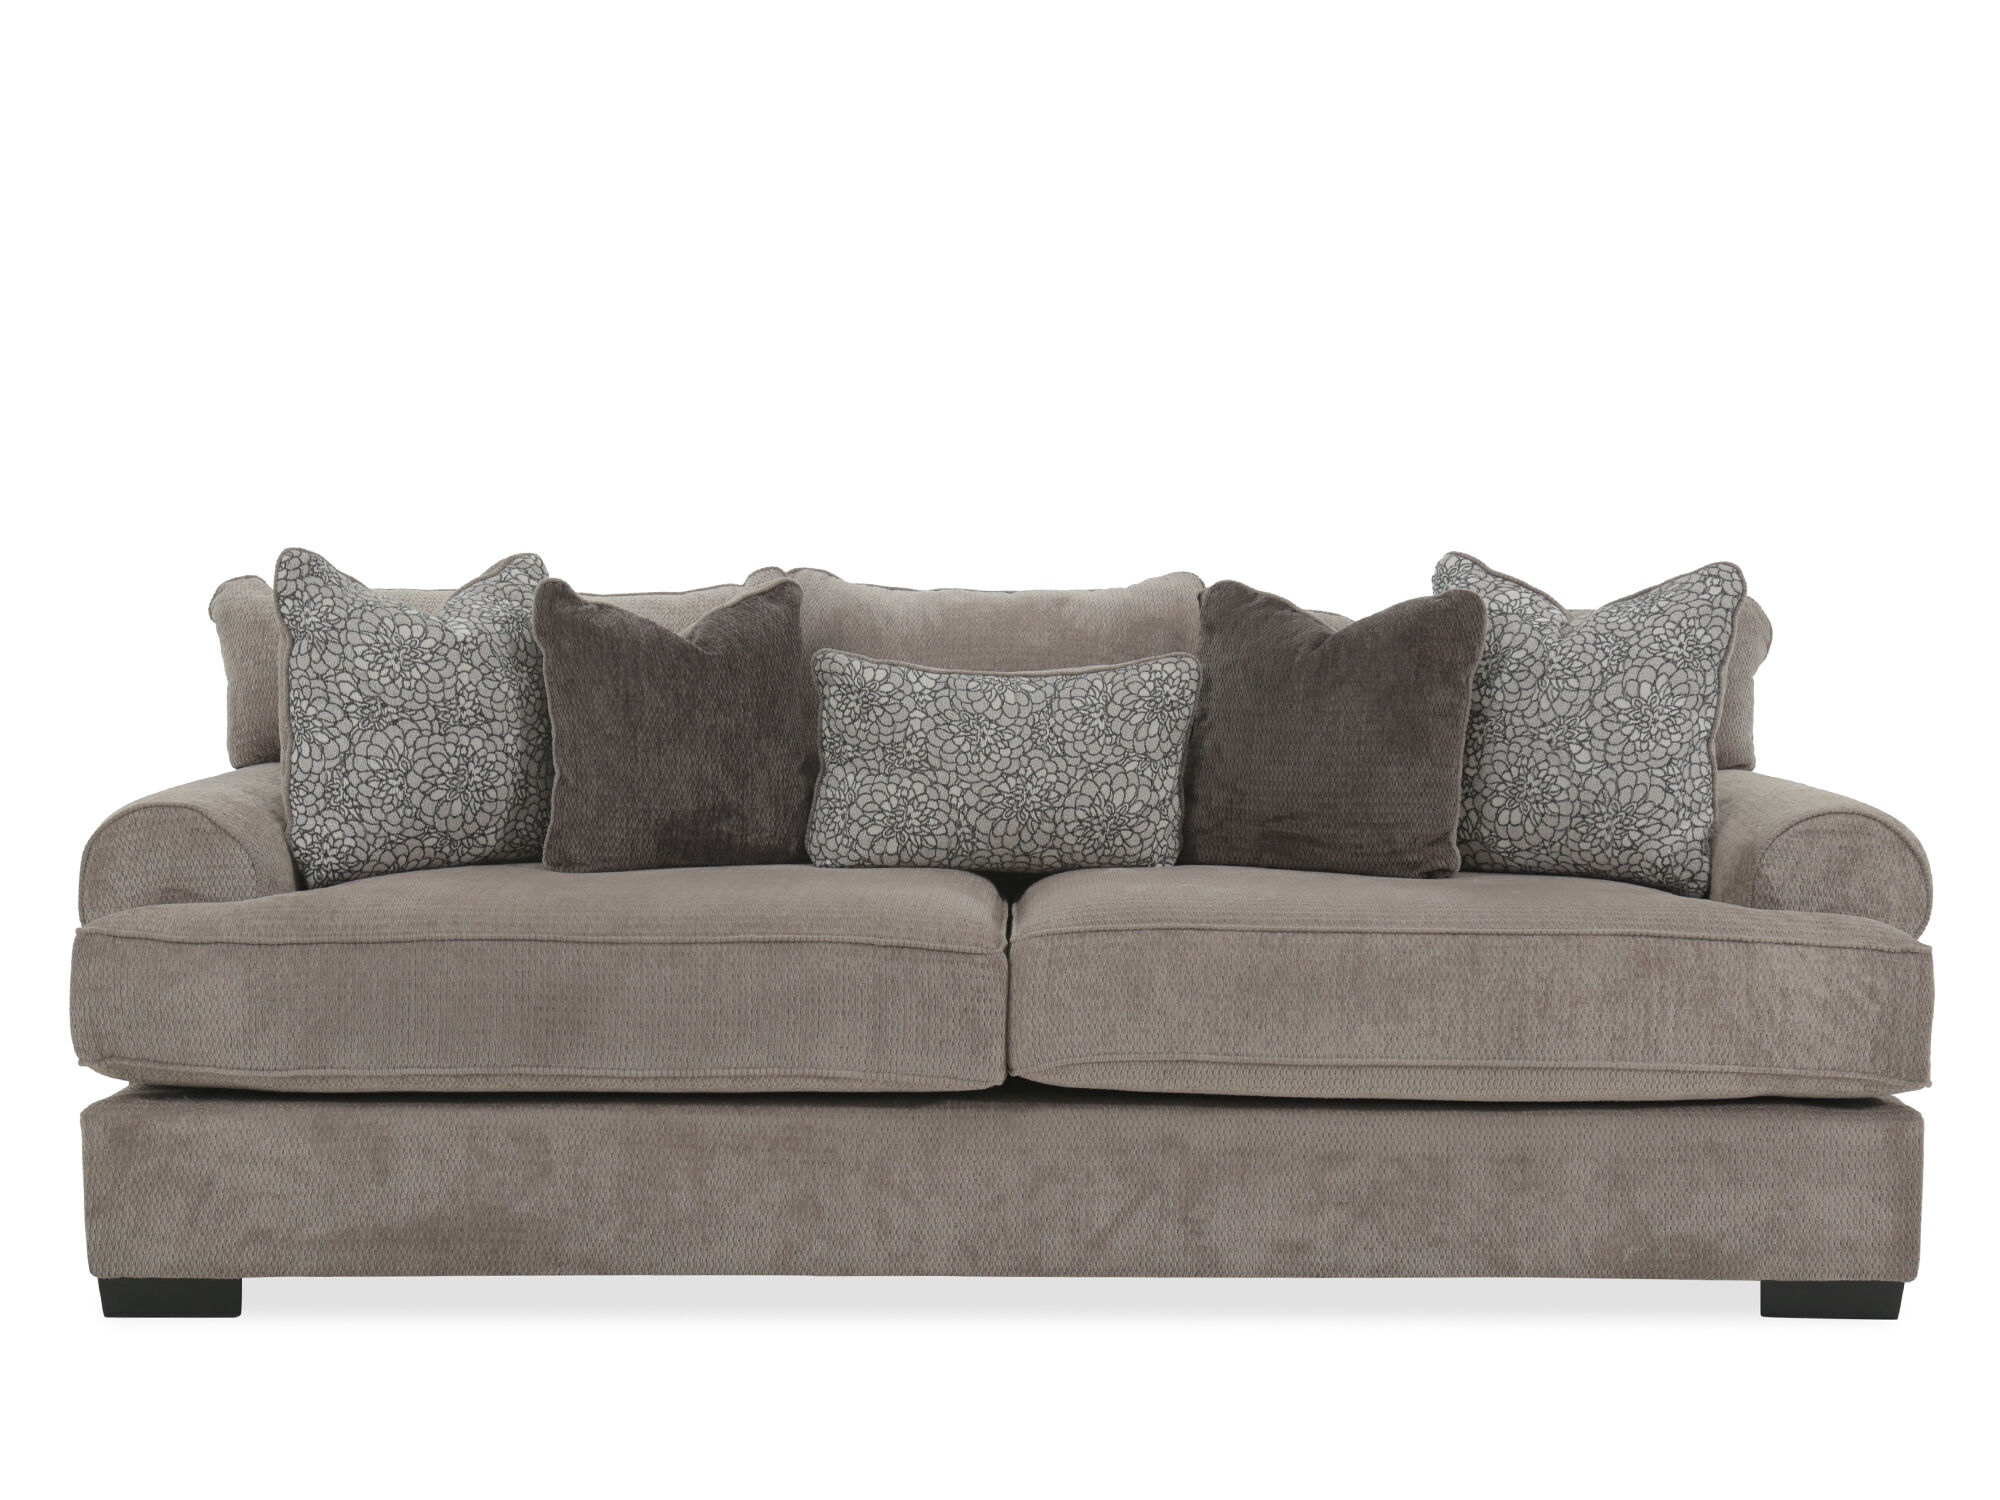 navasota queen sofa sleeper reviews star maker low profile 96 quot in gray mathis brothers furniture